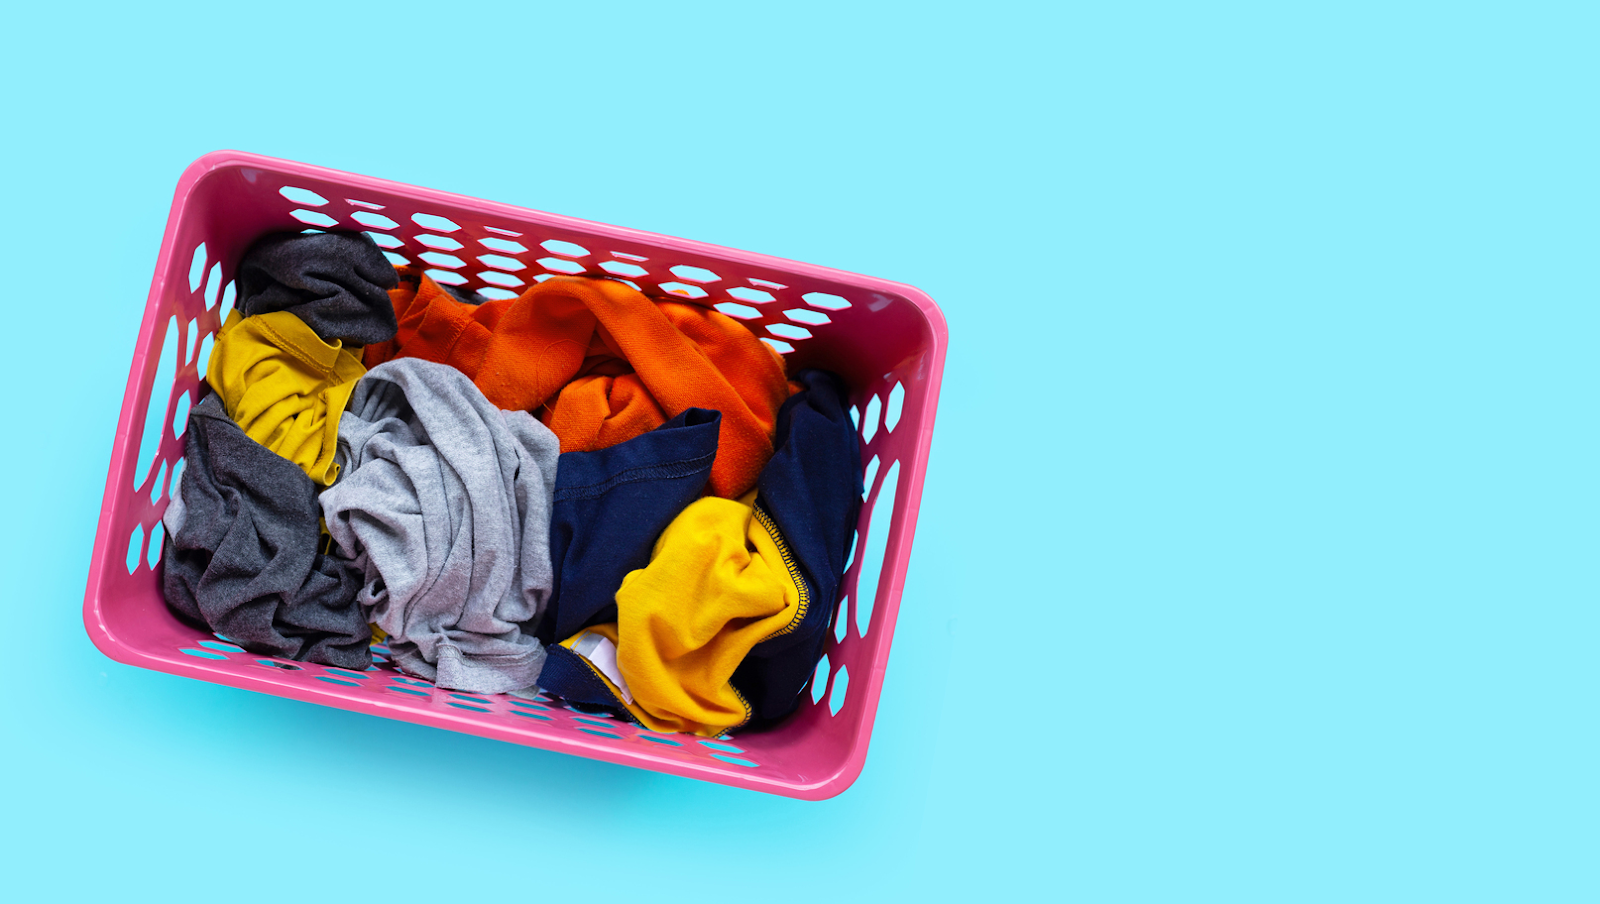 basket with dirty clothes for laundry